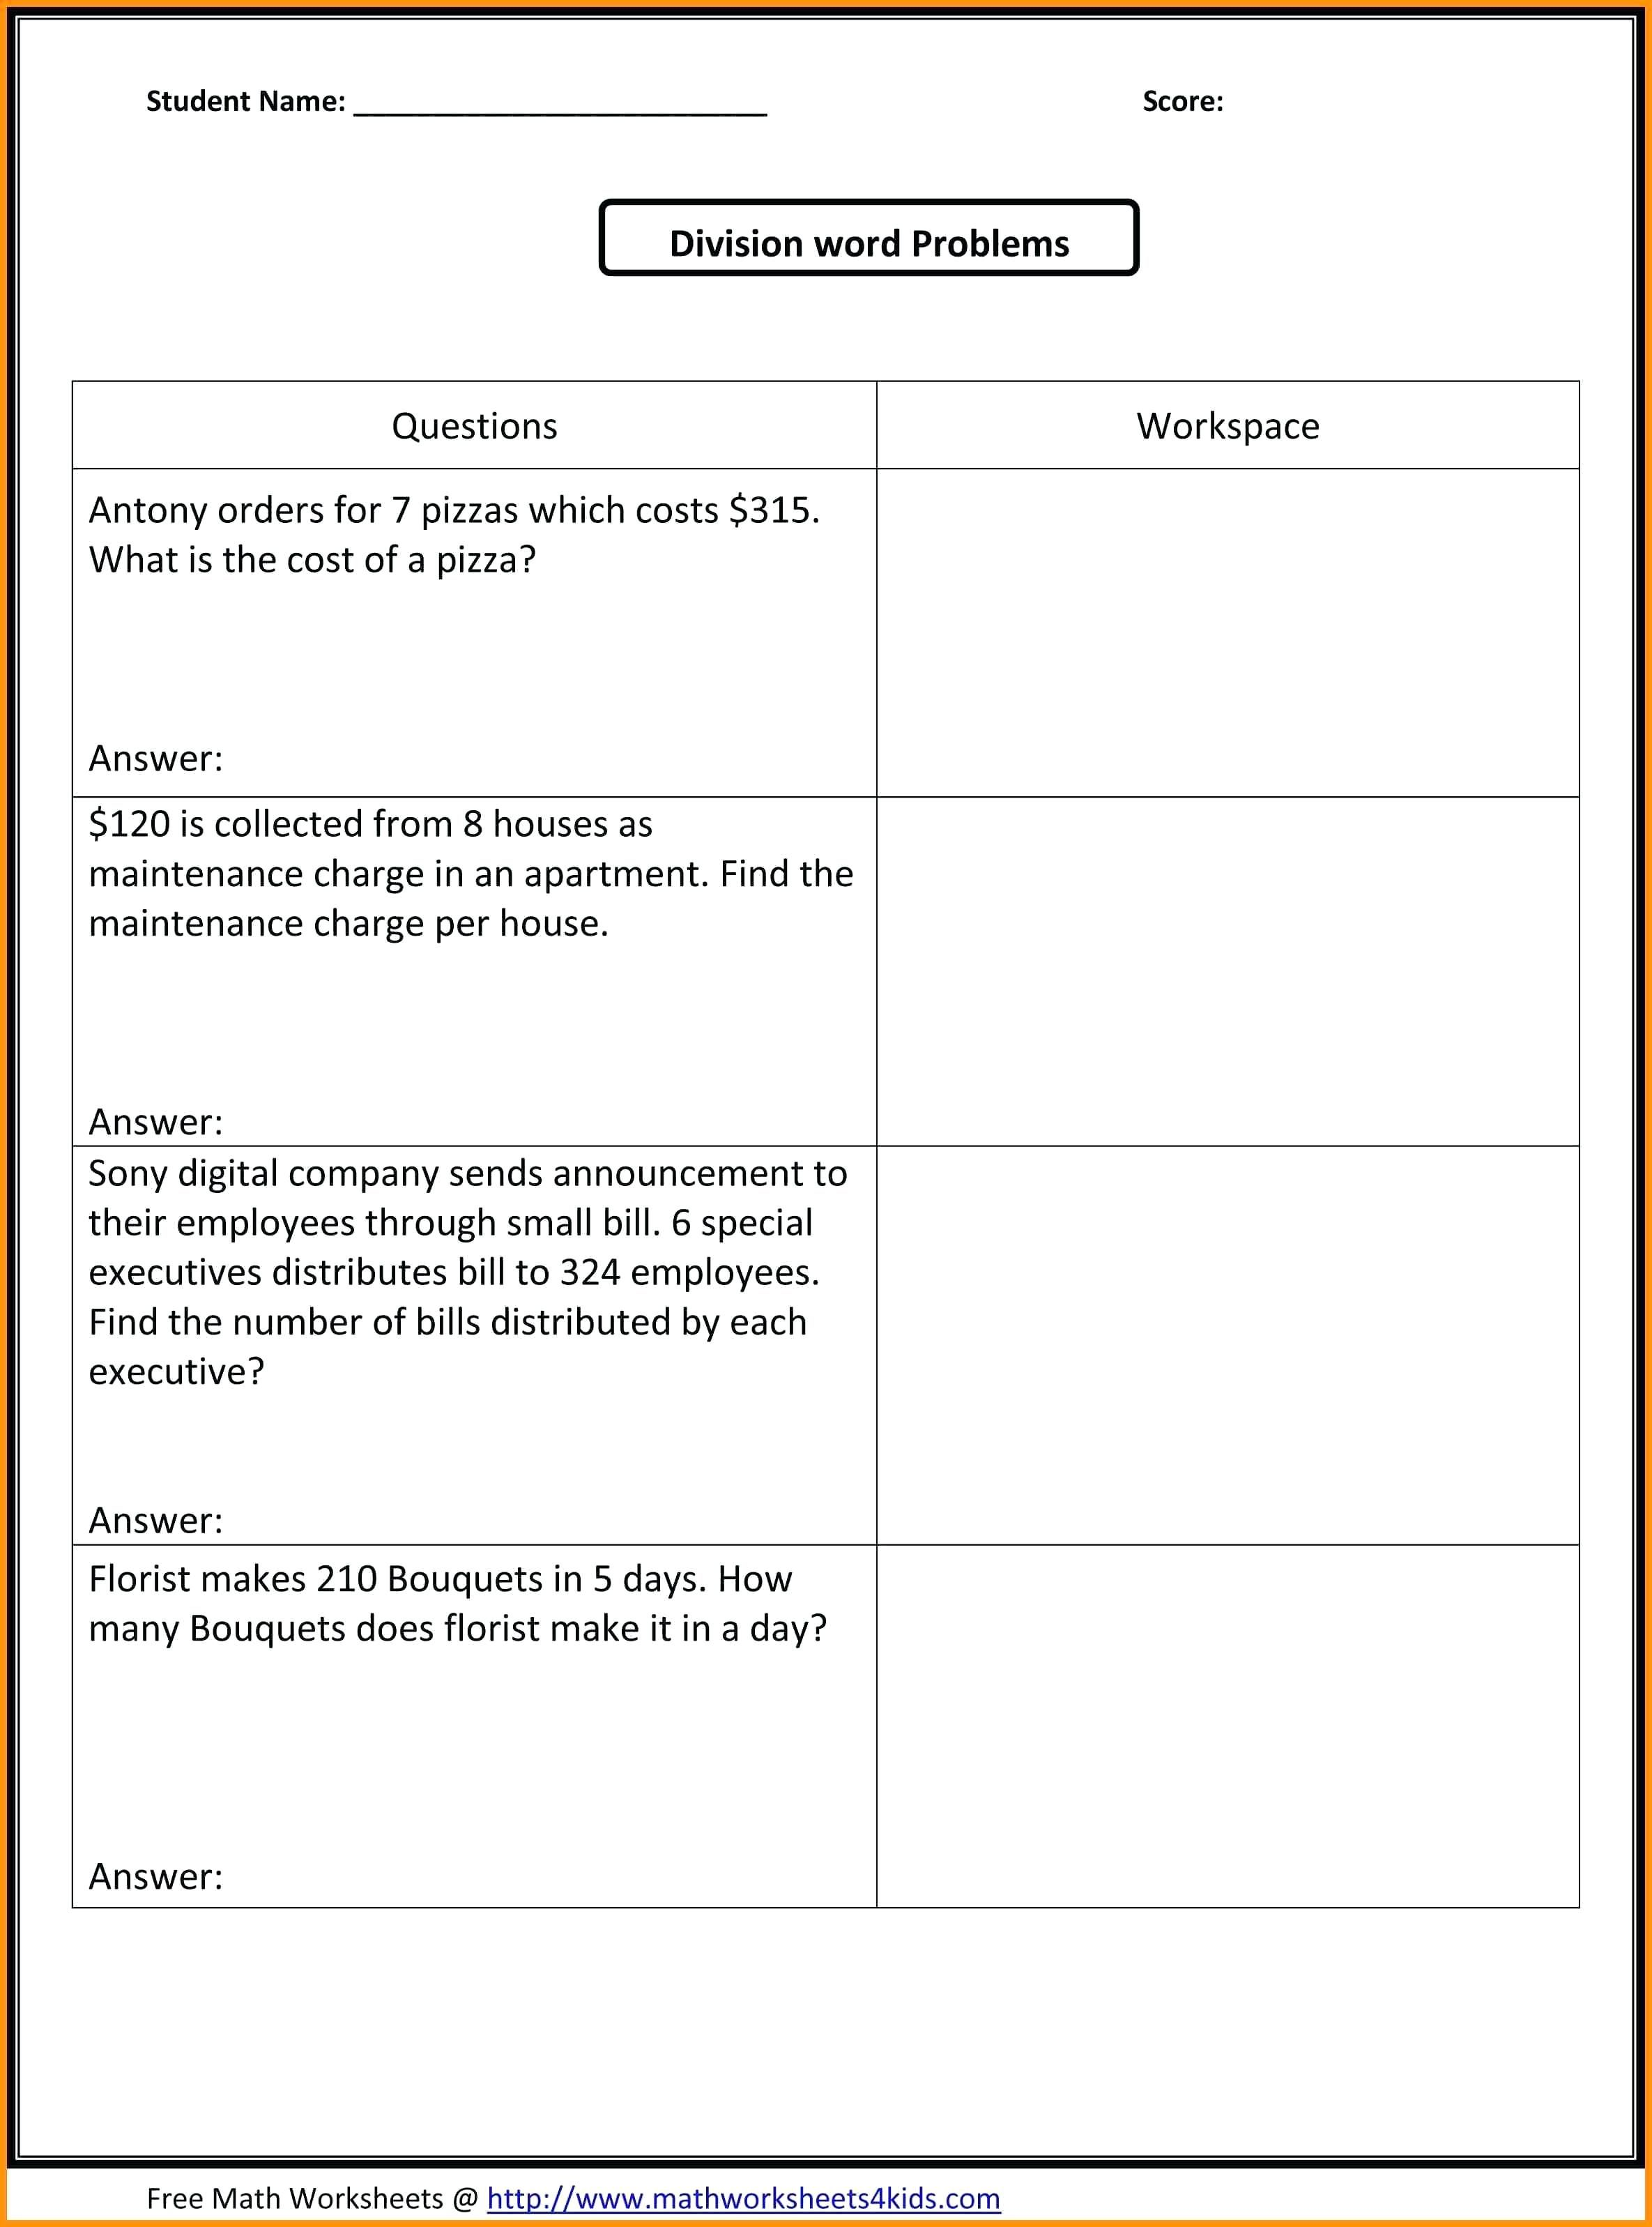 Multiplication Problems 4th Grade For Printable To In